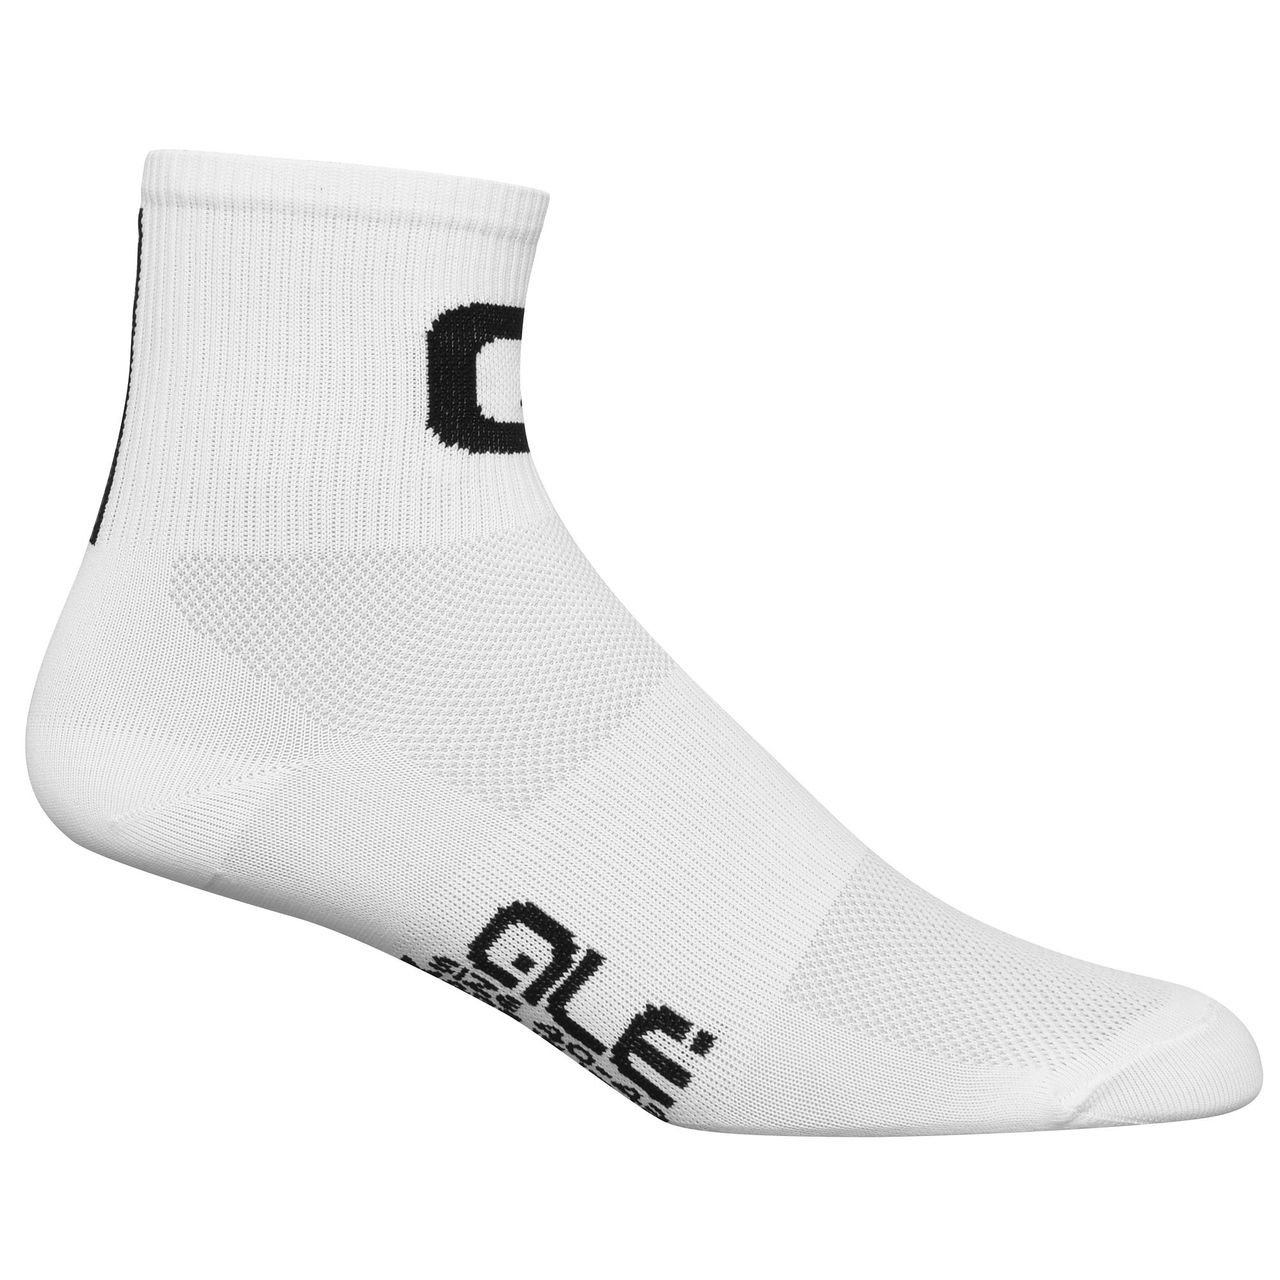 ALE Q-Skin Medium Cuff White Socks